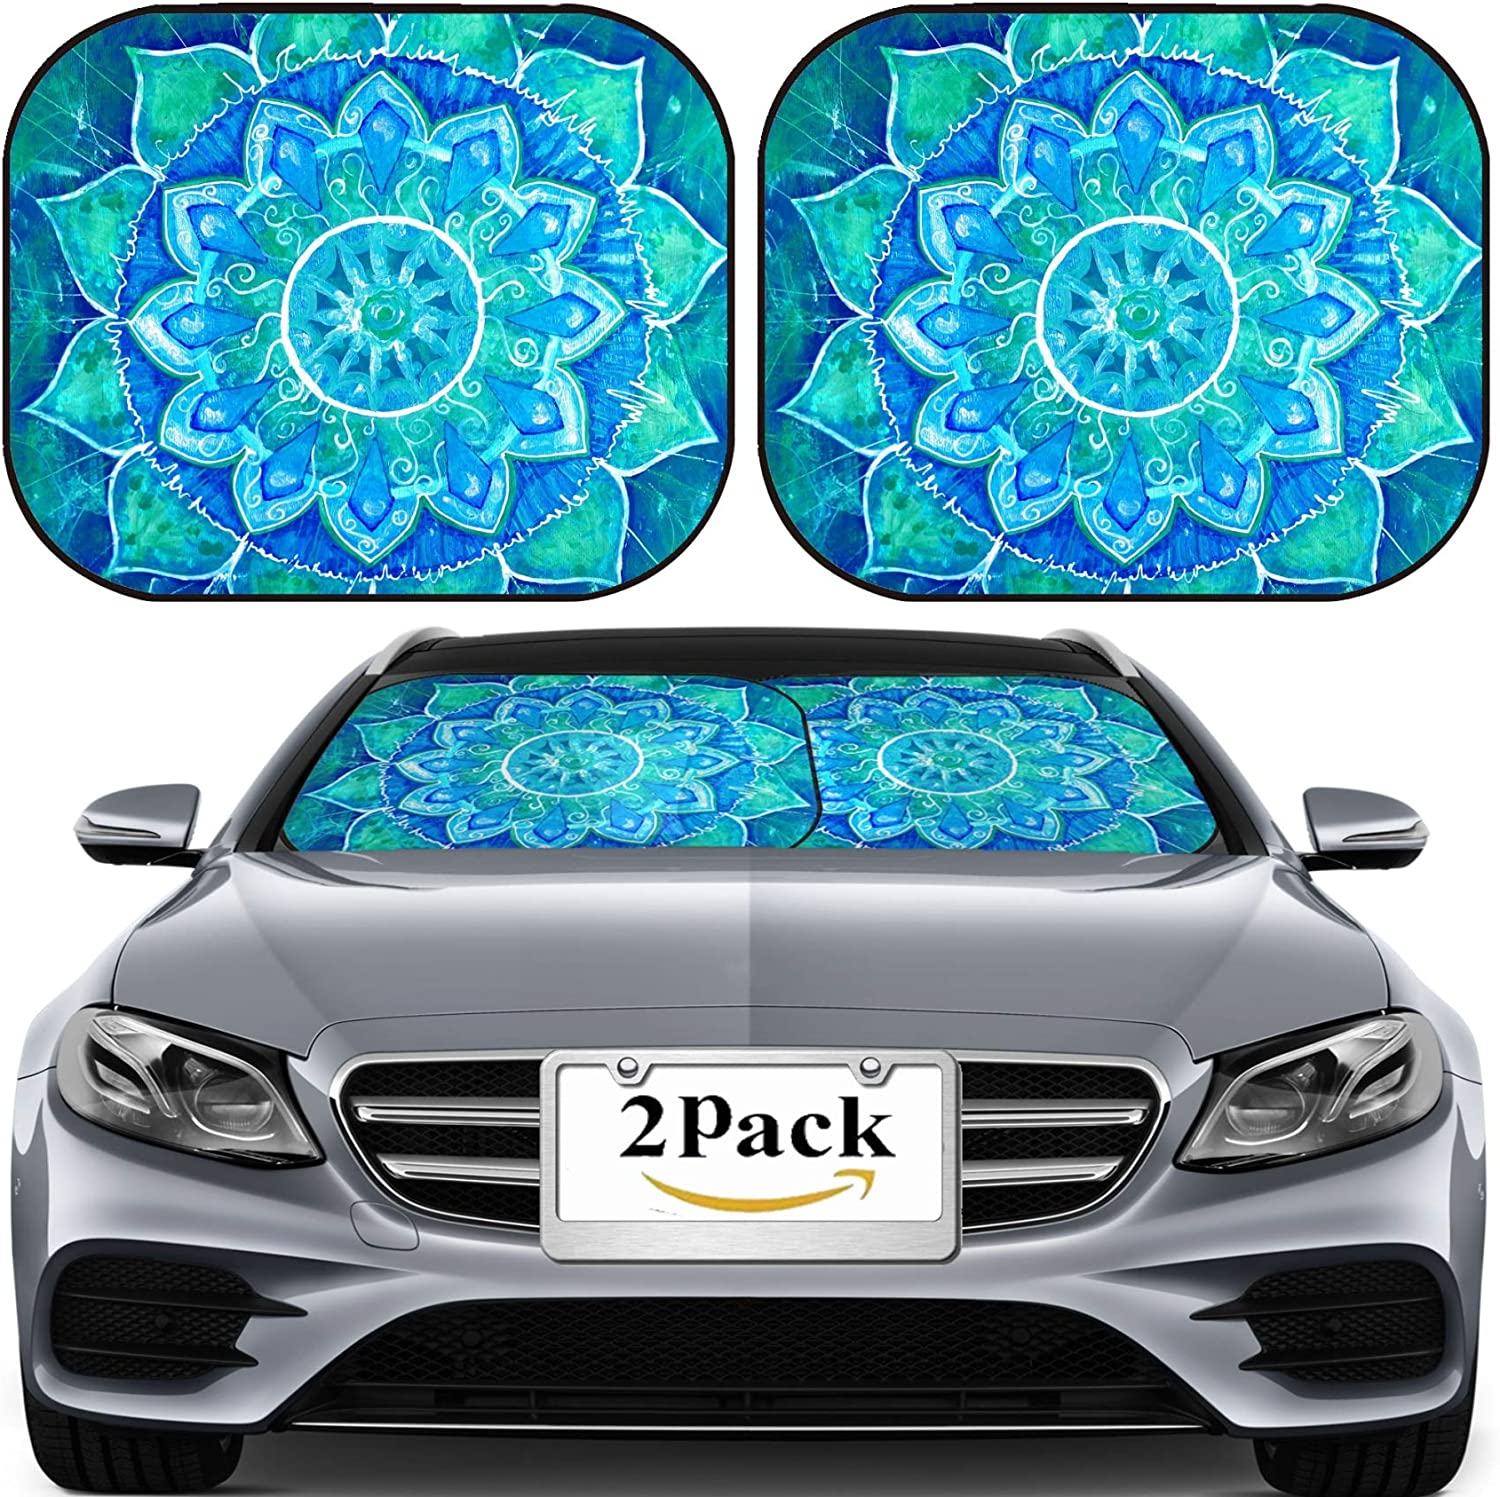 MSD Car Sun Shade Windshield Universal Fit 2 Pack (MUAHABbccA_Abstract Blue PAINTE_986)